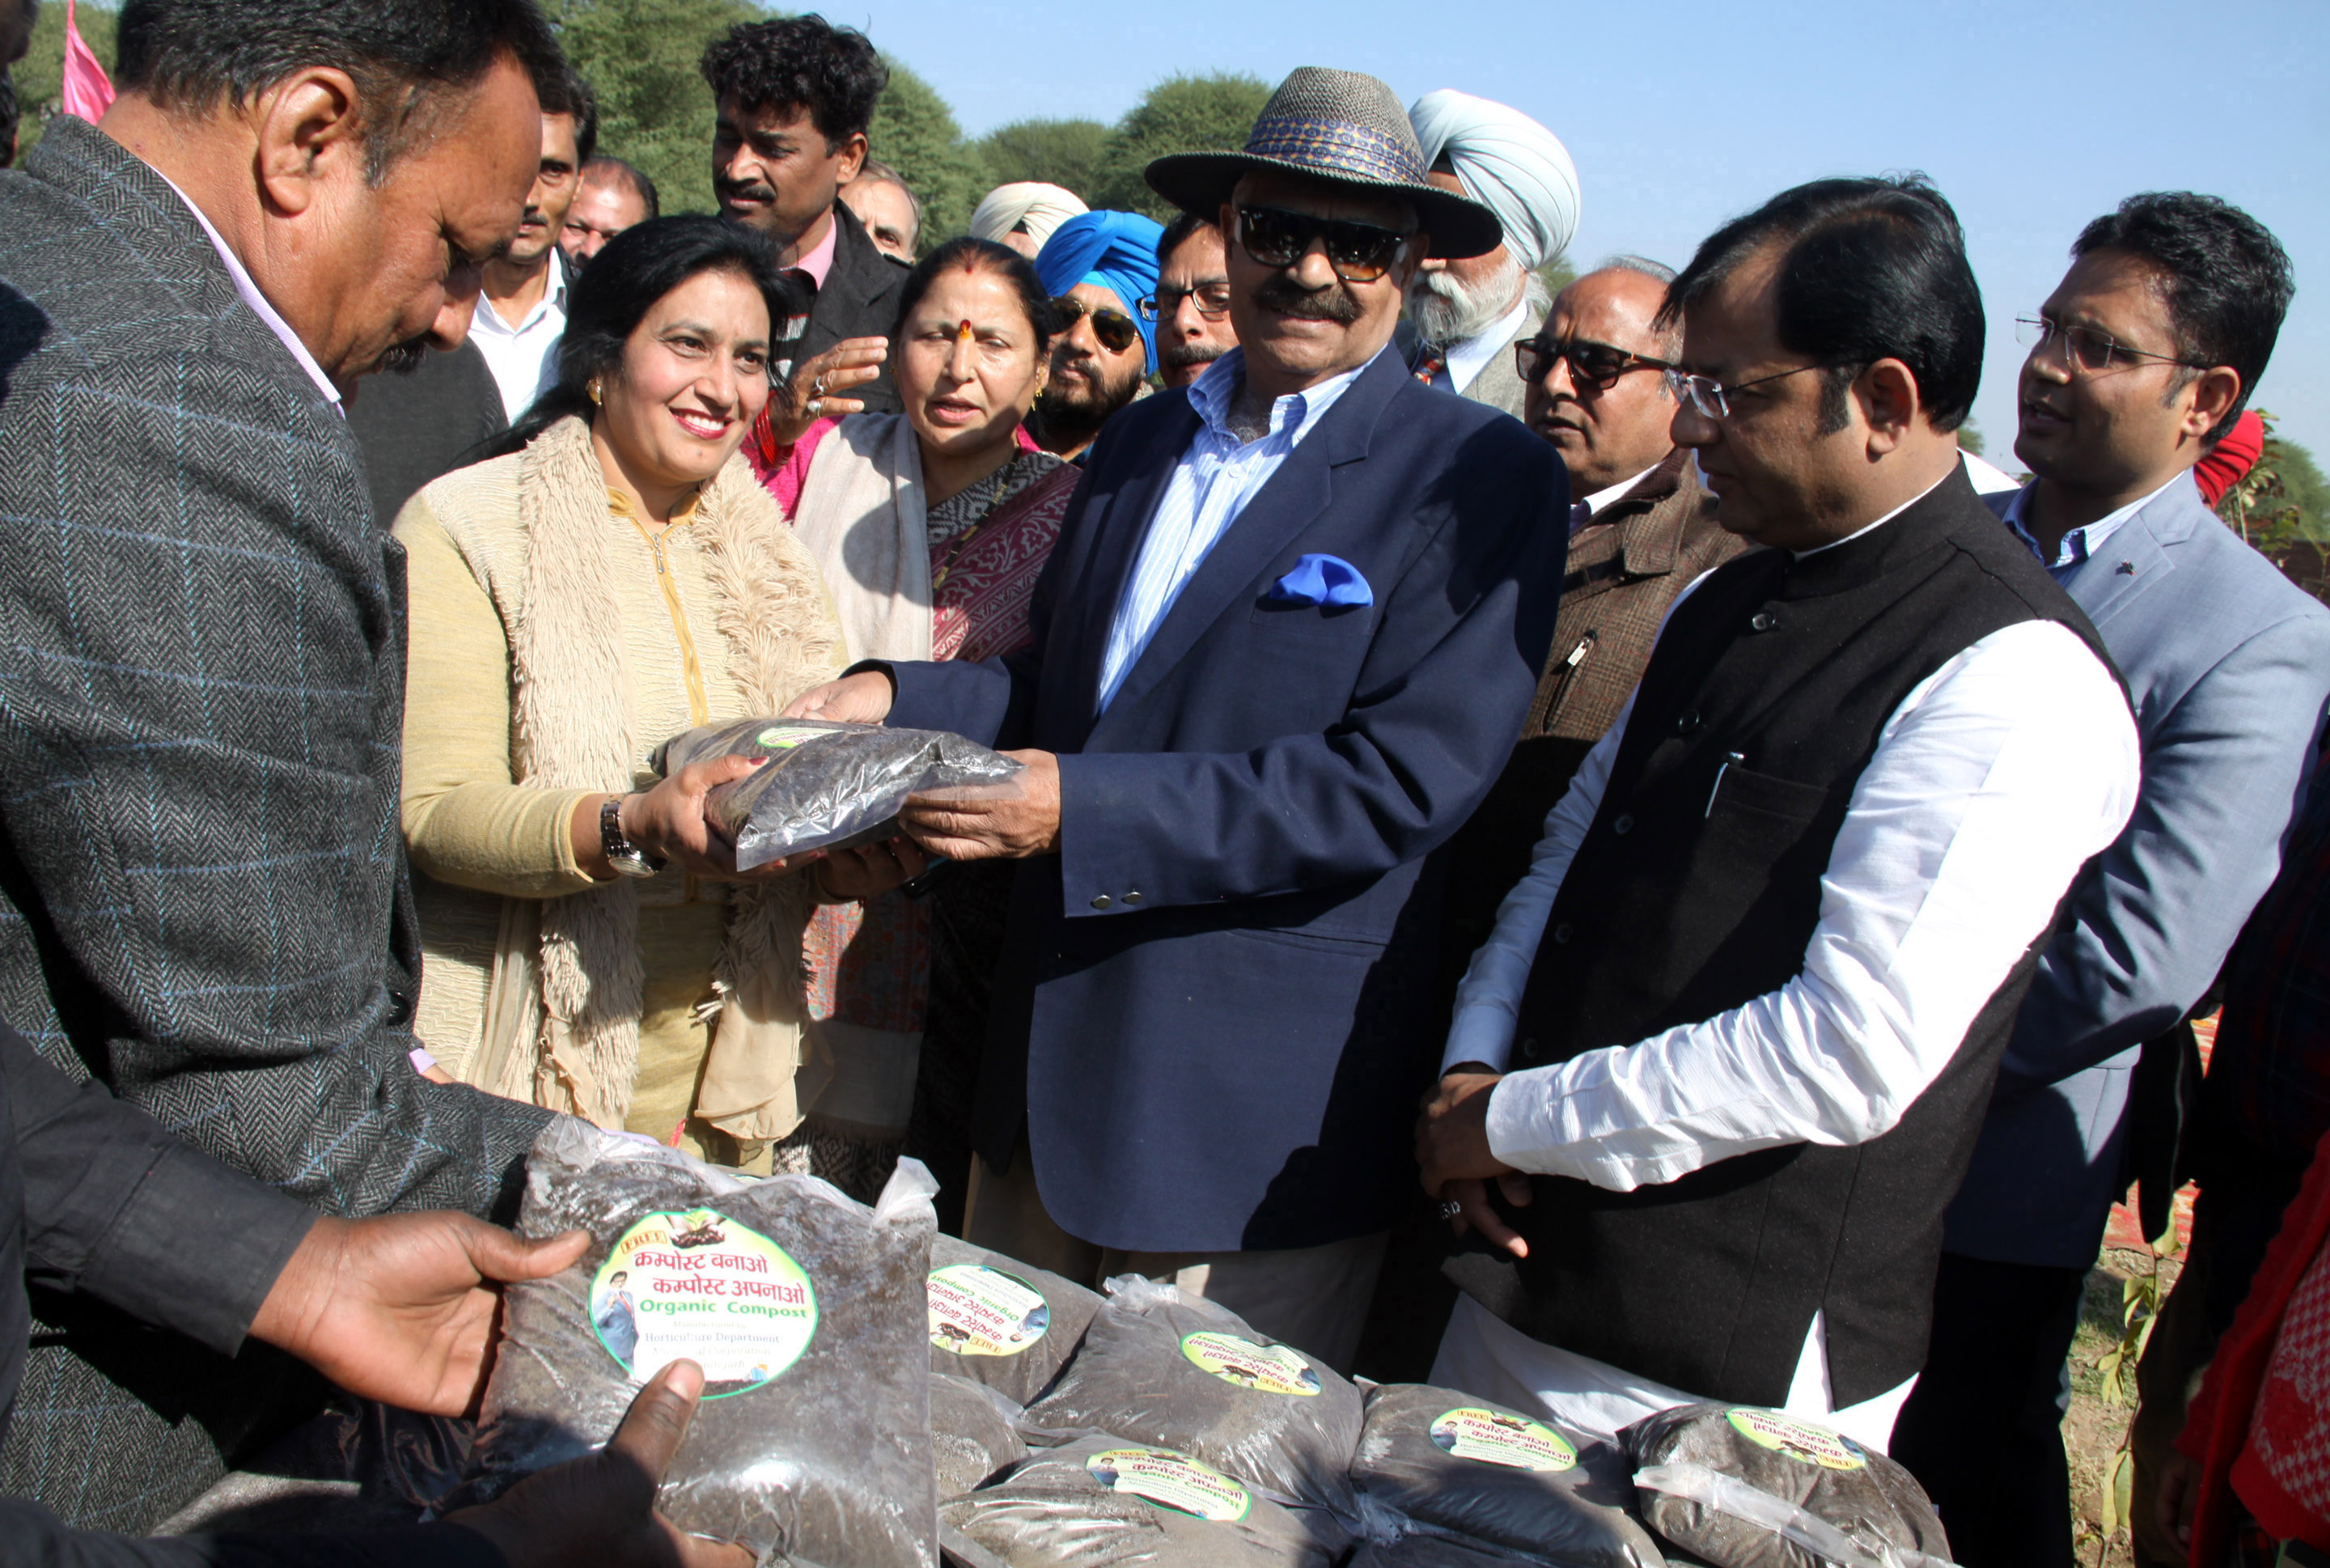 The Governor of Punjab and Administrator, UT, Chandigarh, Shri V.P. Singh Badnore distributing compost to the peoples at Green Belt, Sector-50, Chandigarh on Friday, January 19, 2018.